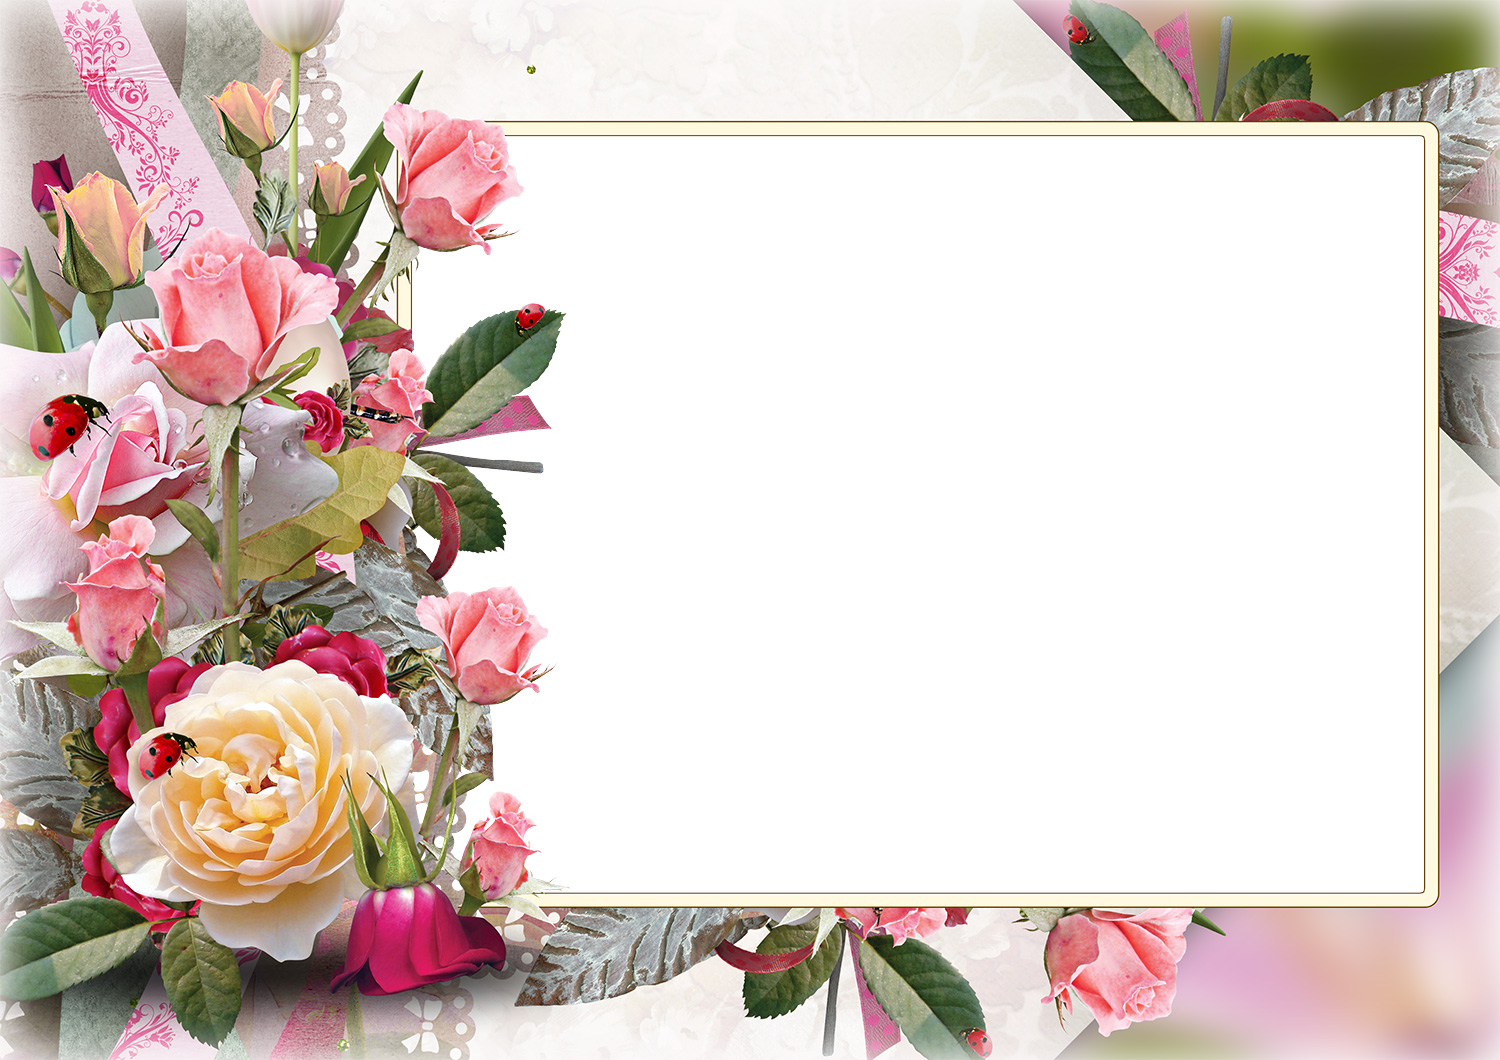 Flowers Photo Frames | LoonaPix - Roses, Tulips, Poppies! (60+ frames)